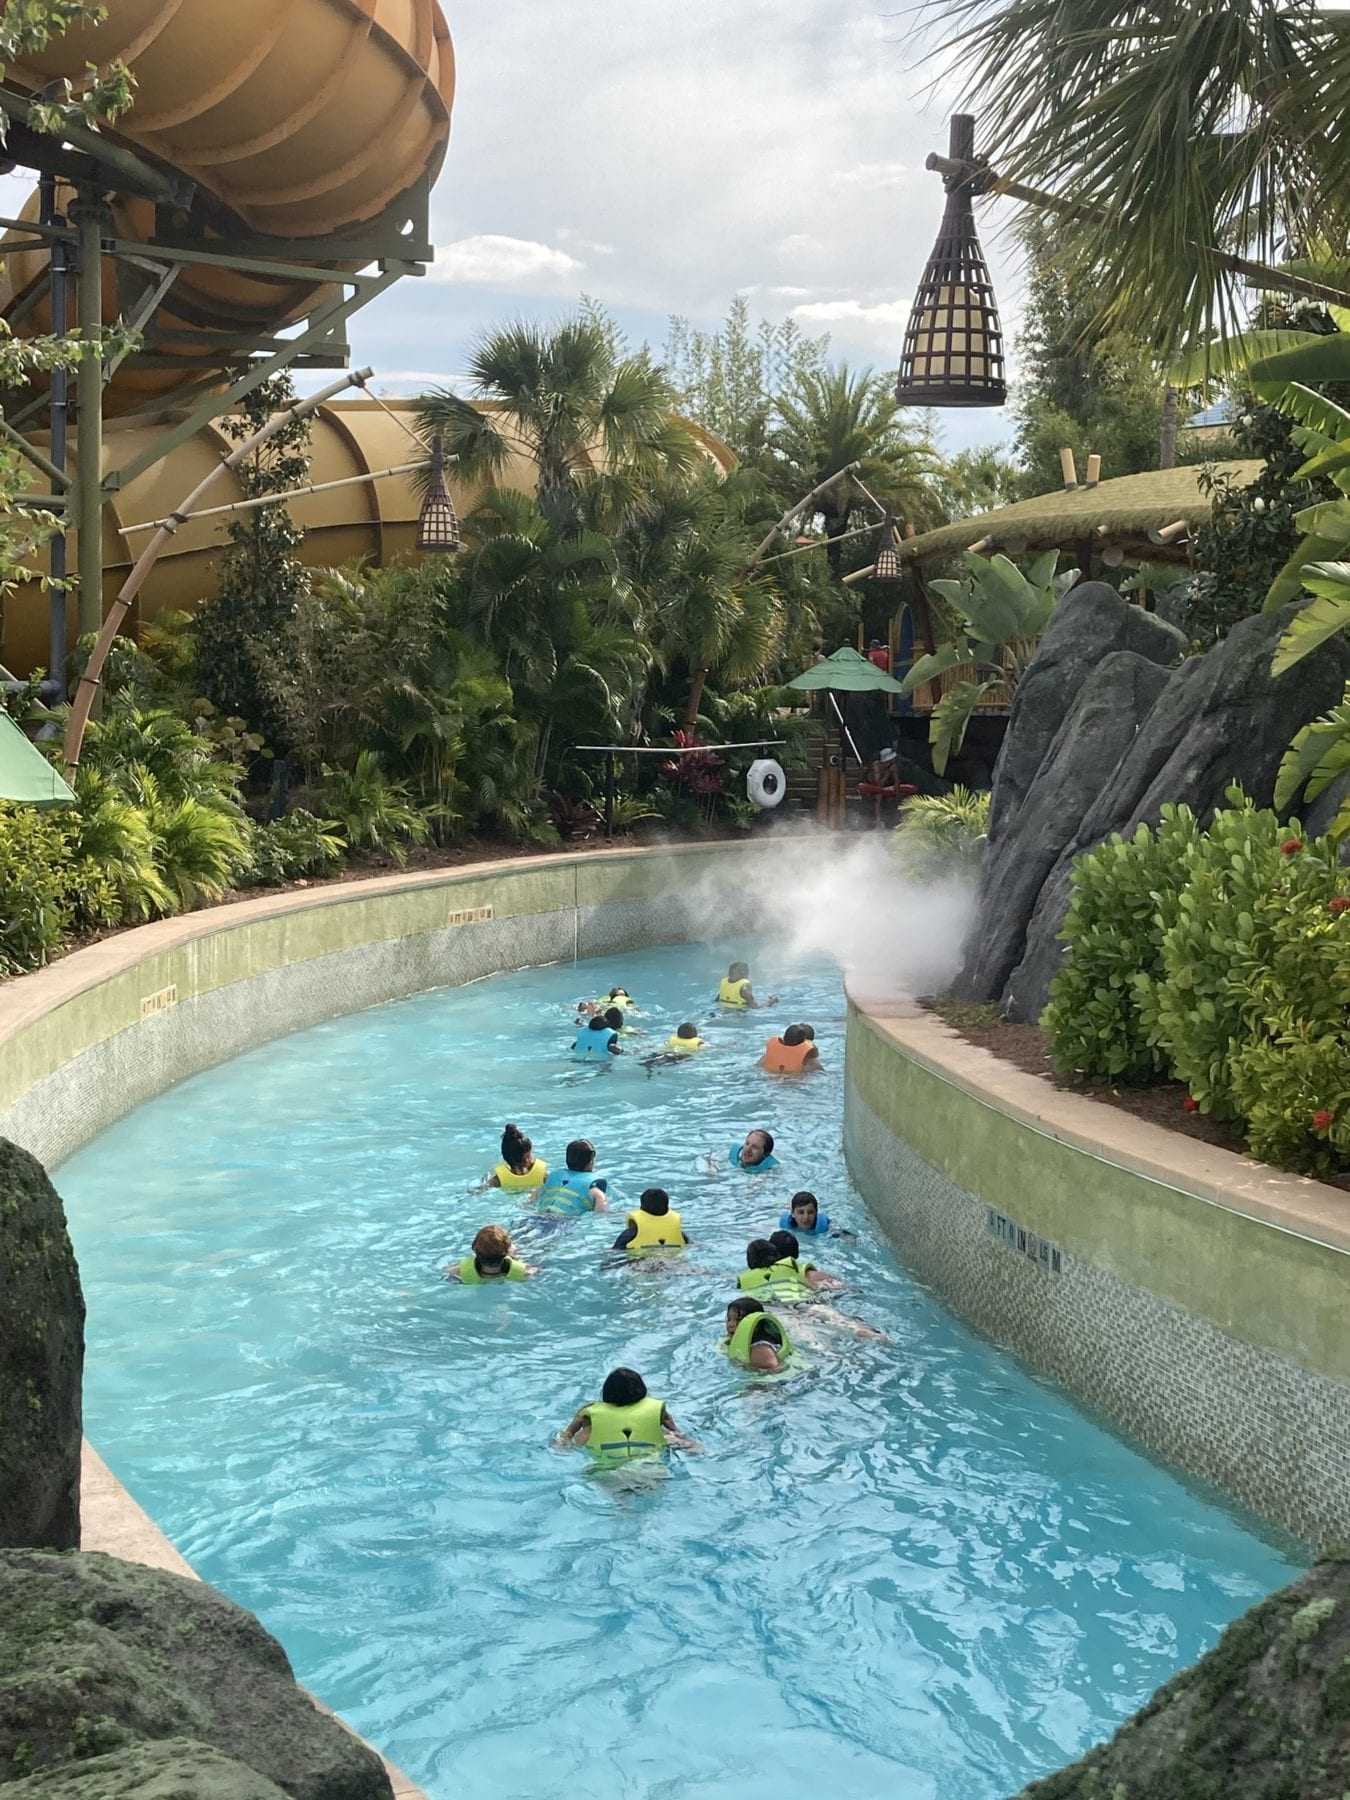 Volcano Bay Rides The fearless River